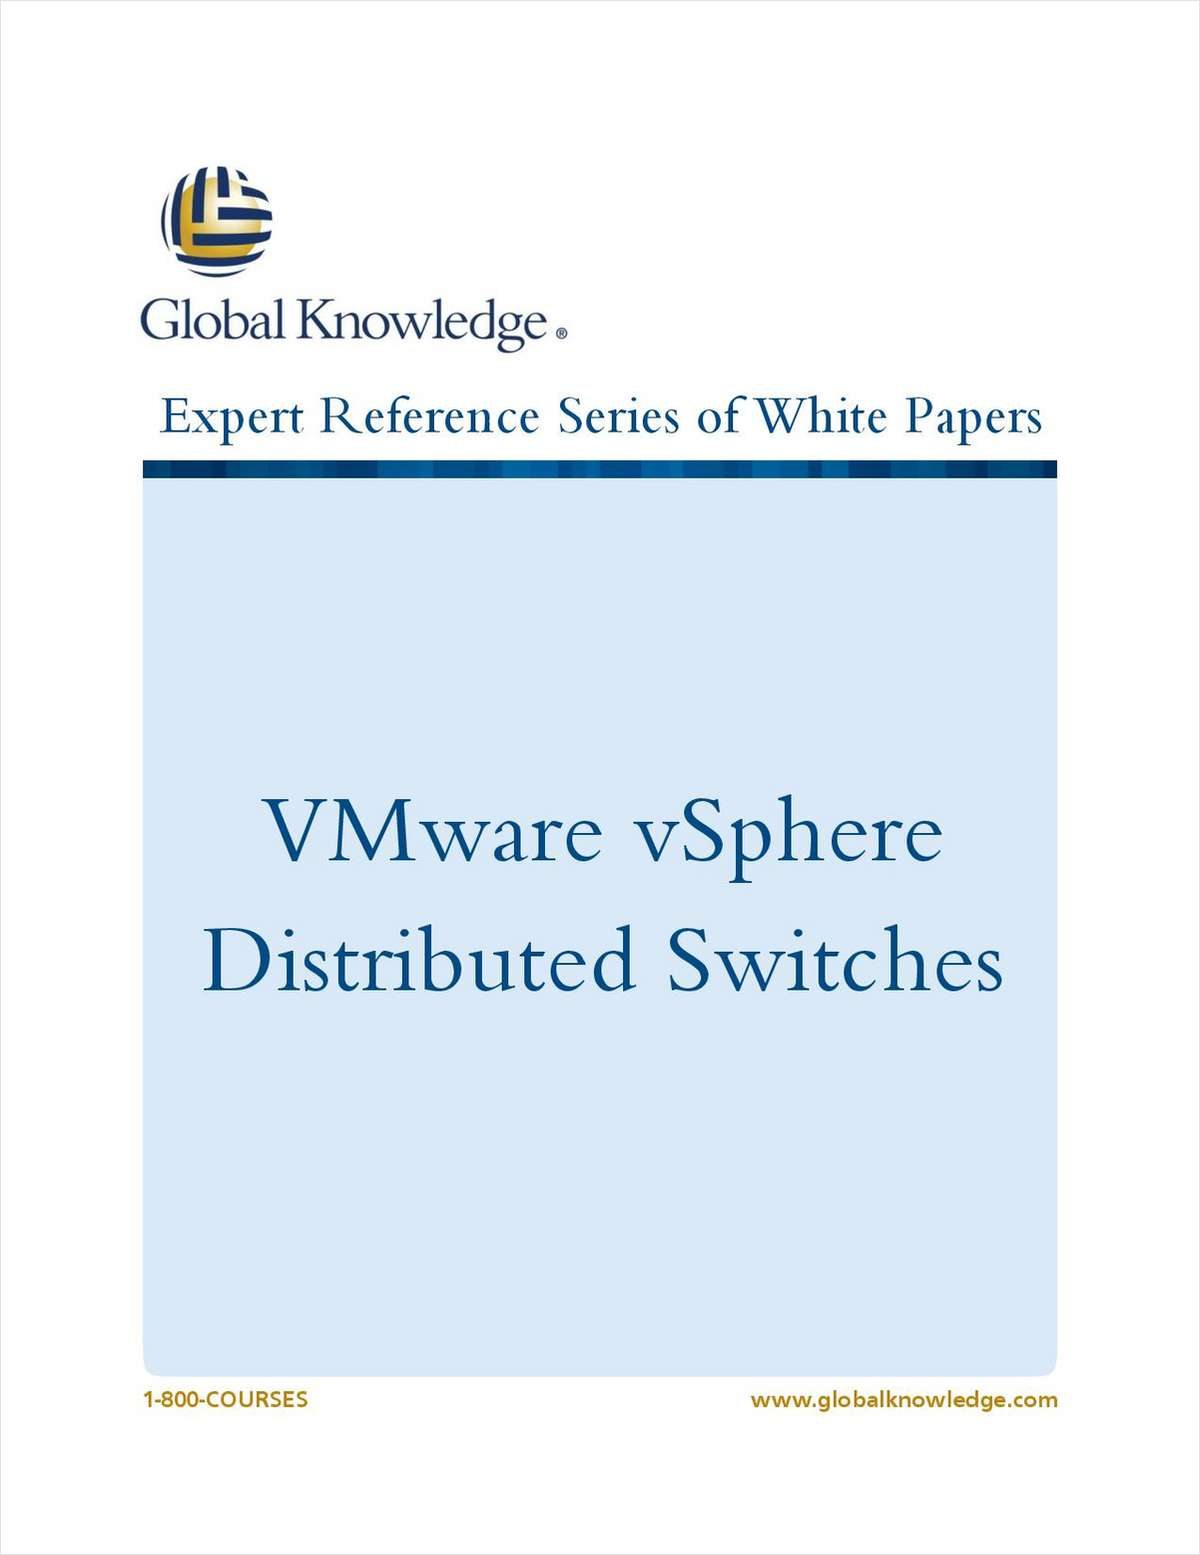 VMware vSphere Distributed Switches